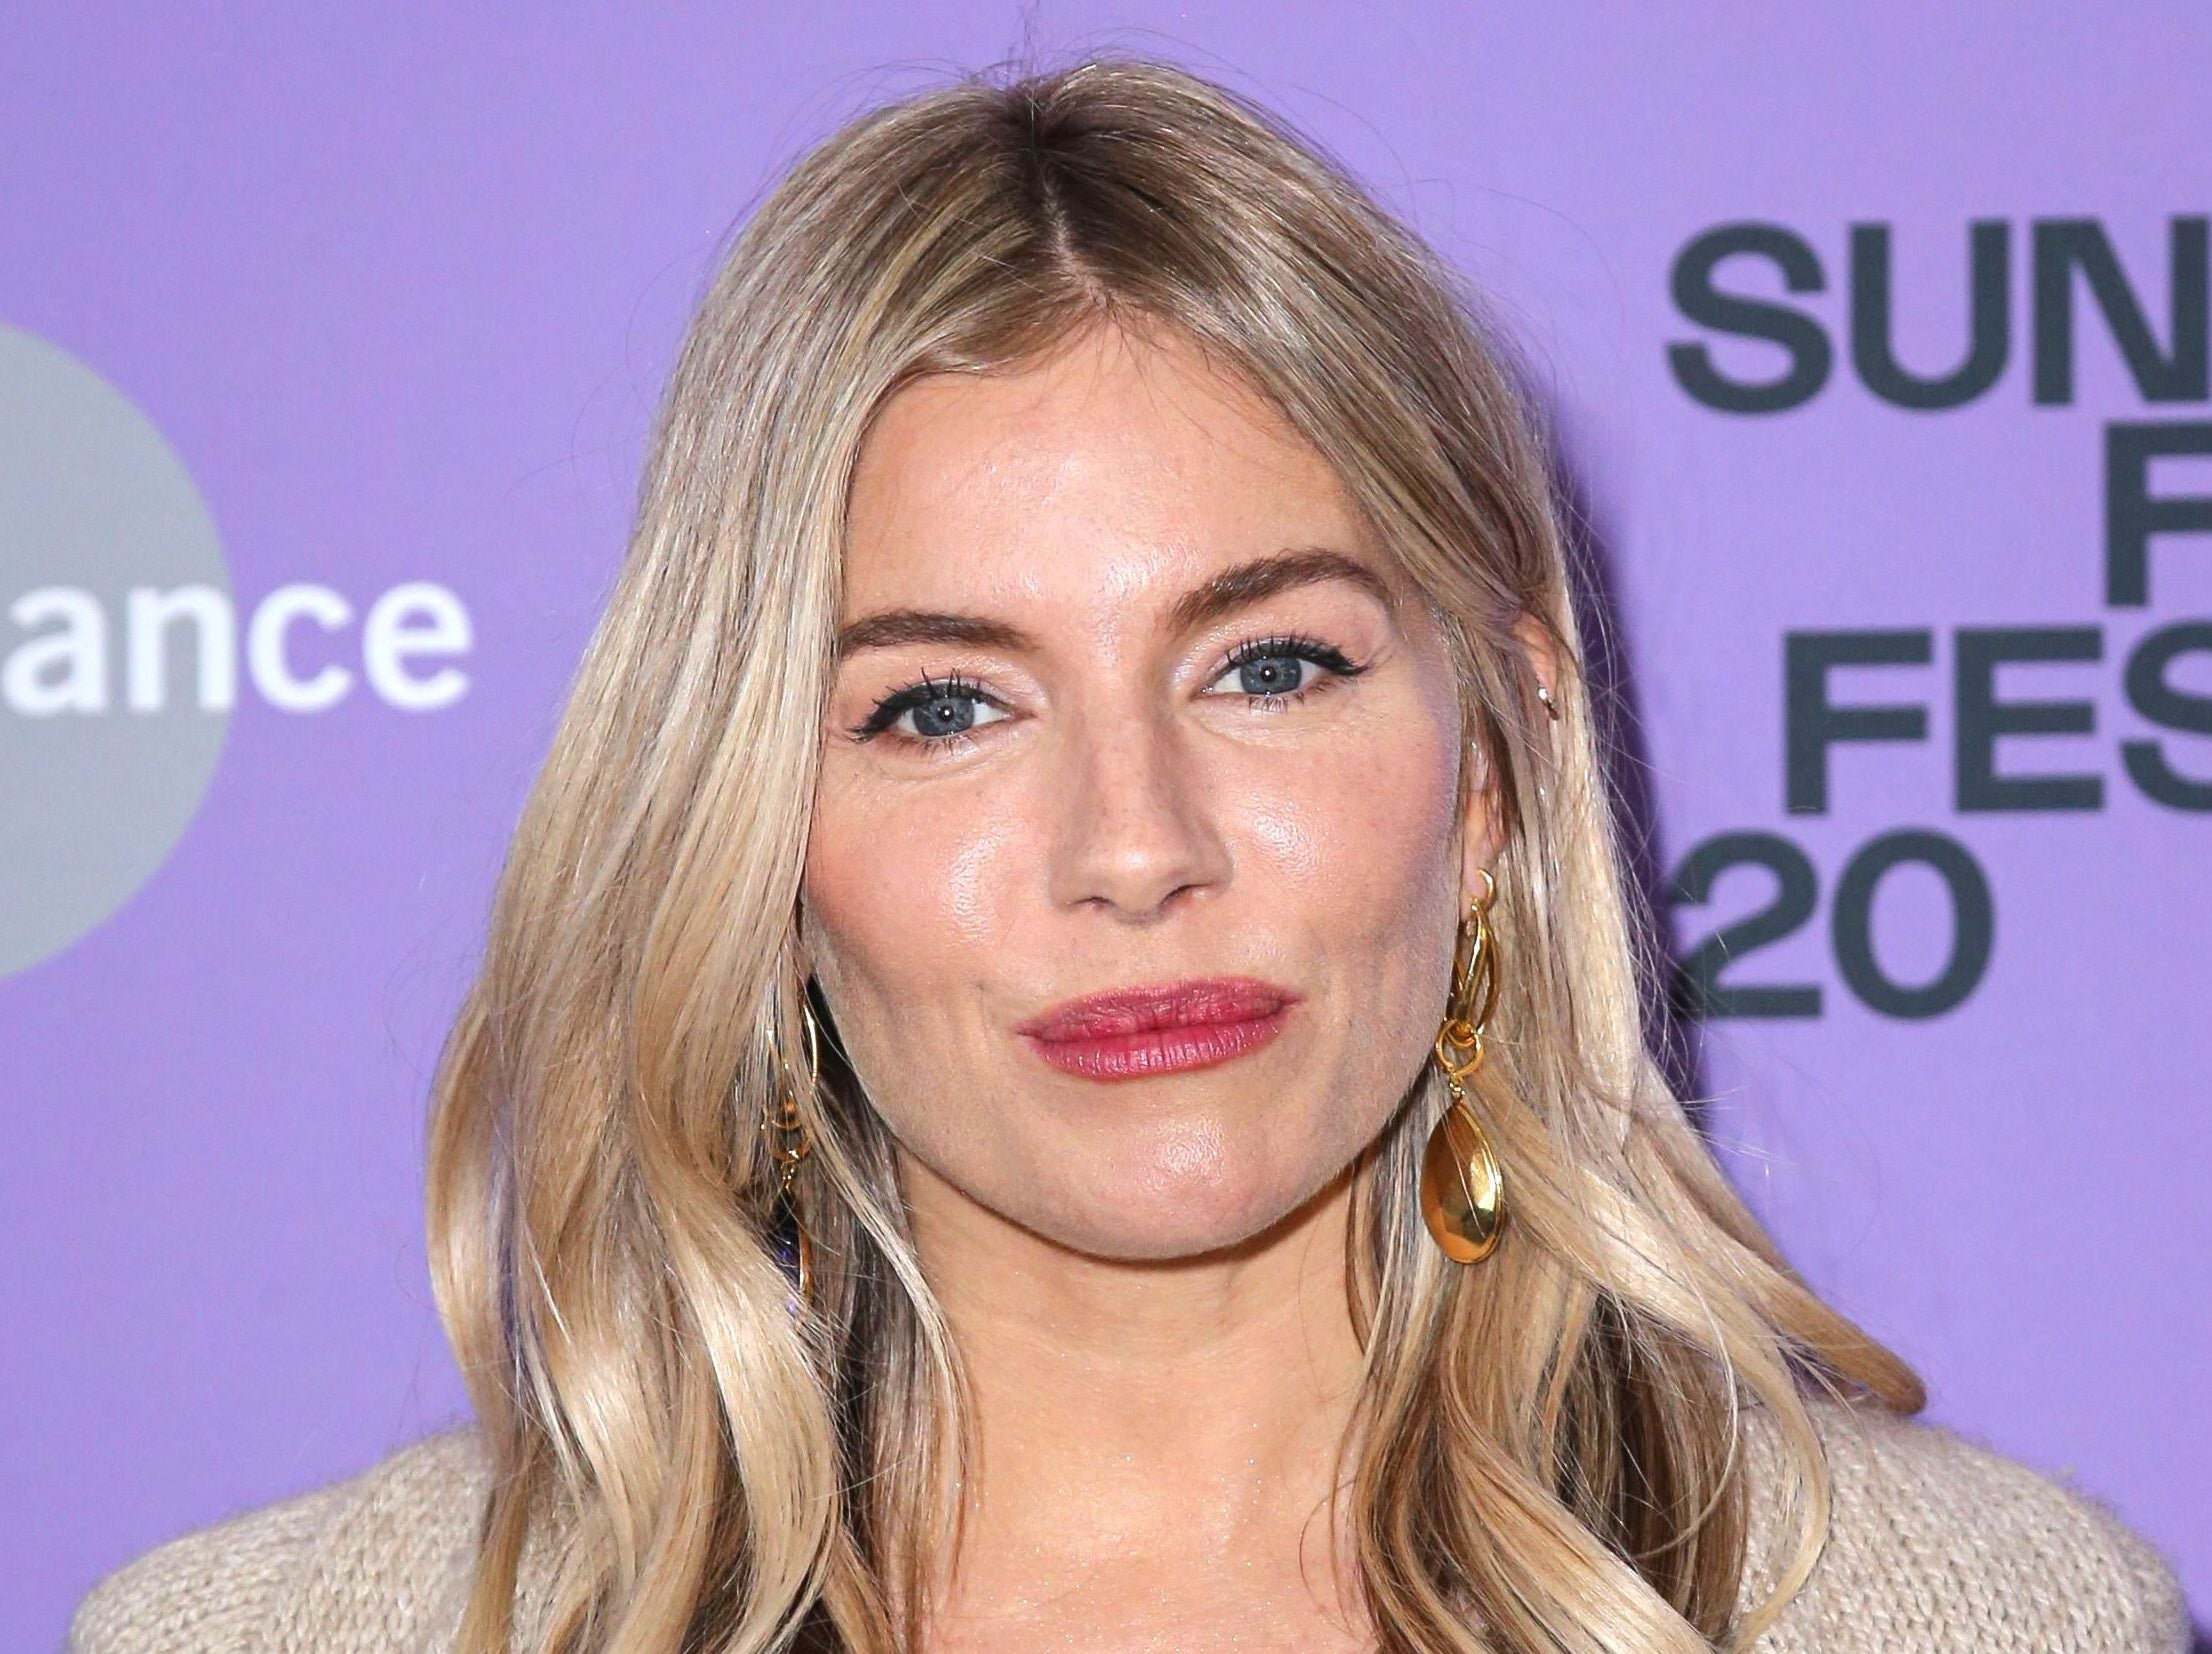 Sienna Miller says she doesn't remember six weeks of Jude Law affair scandal